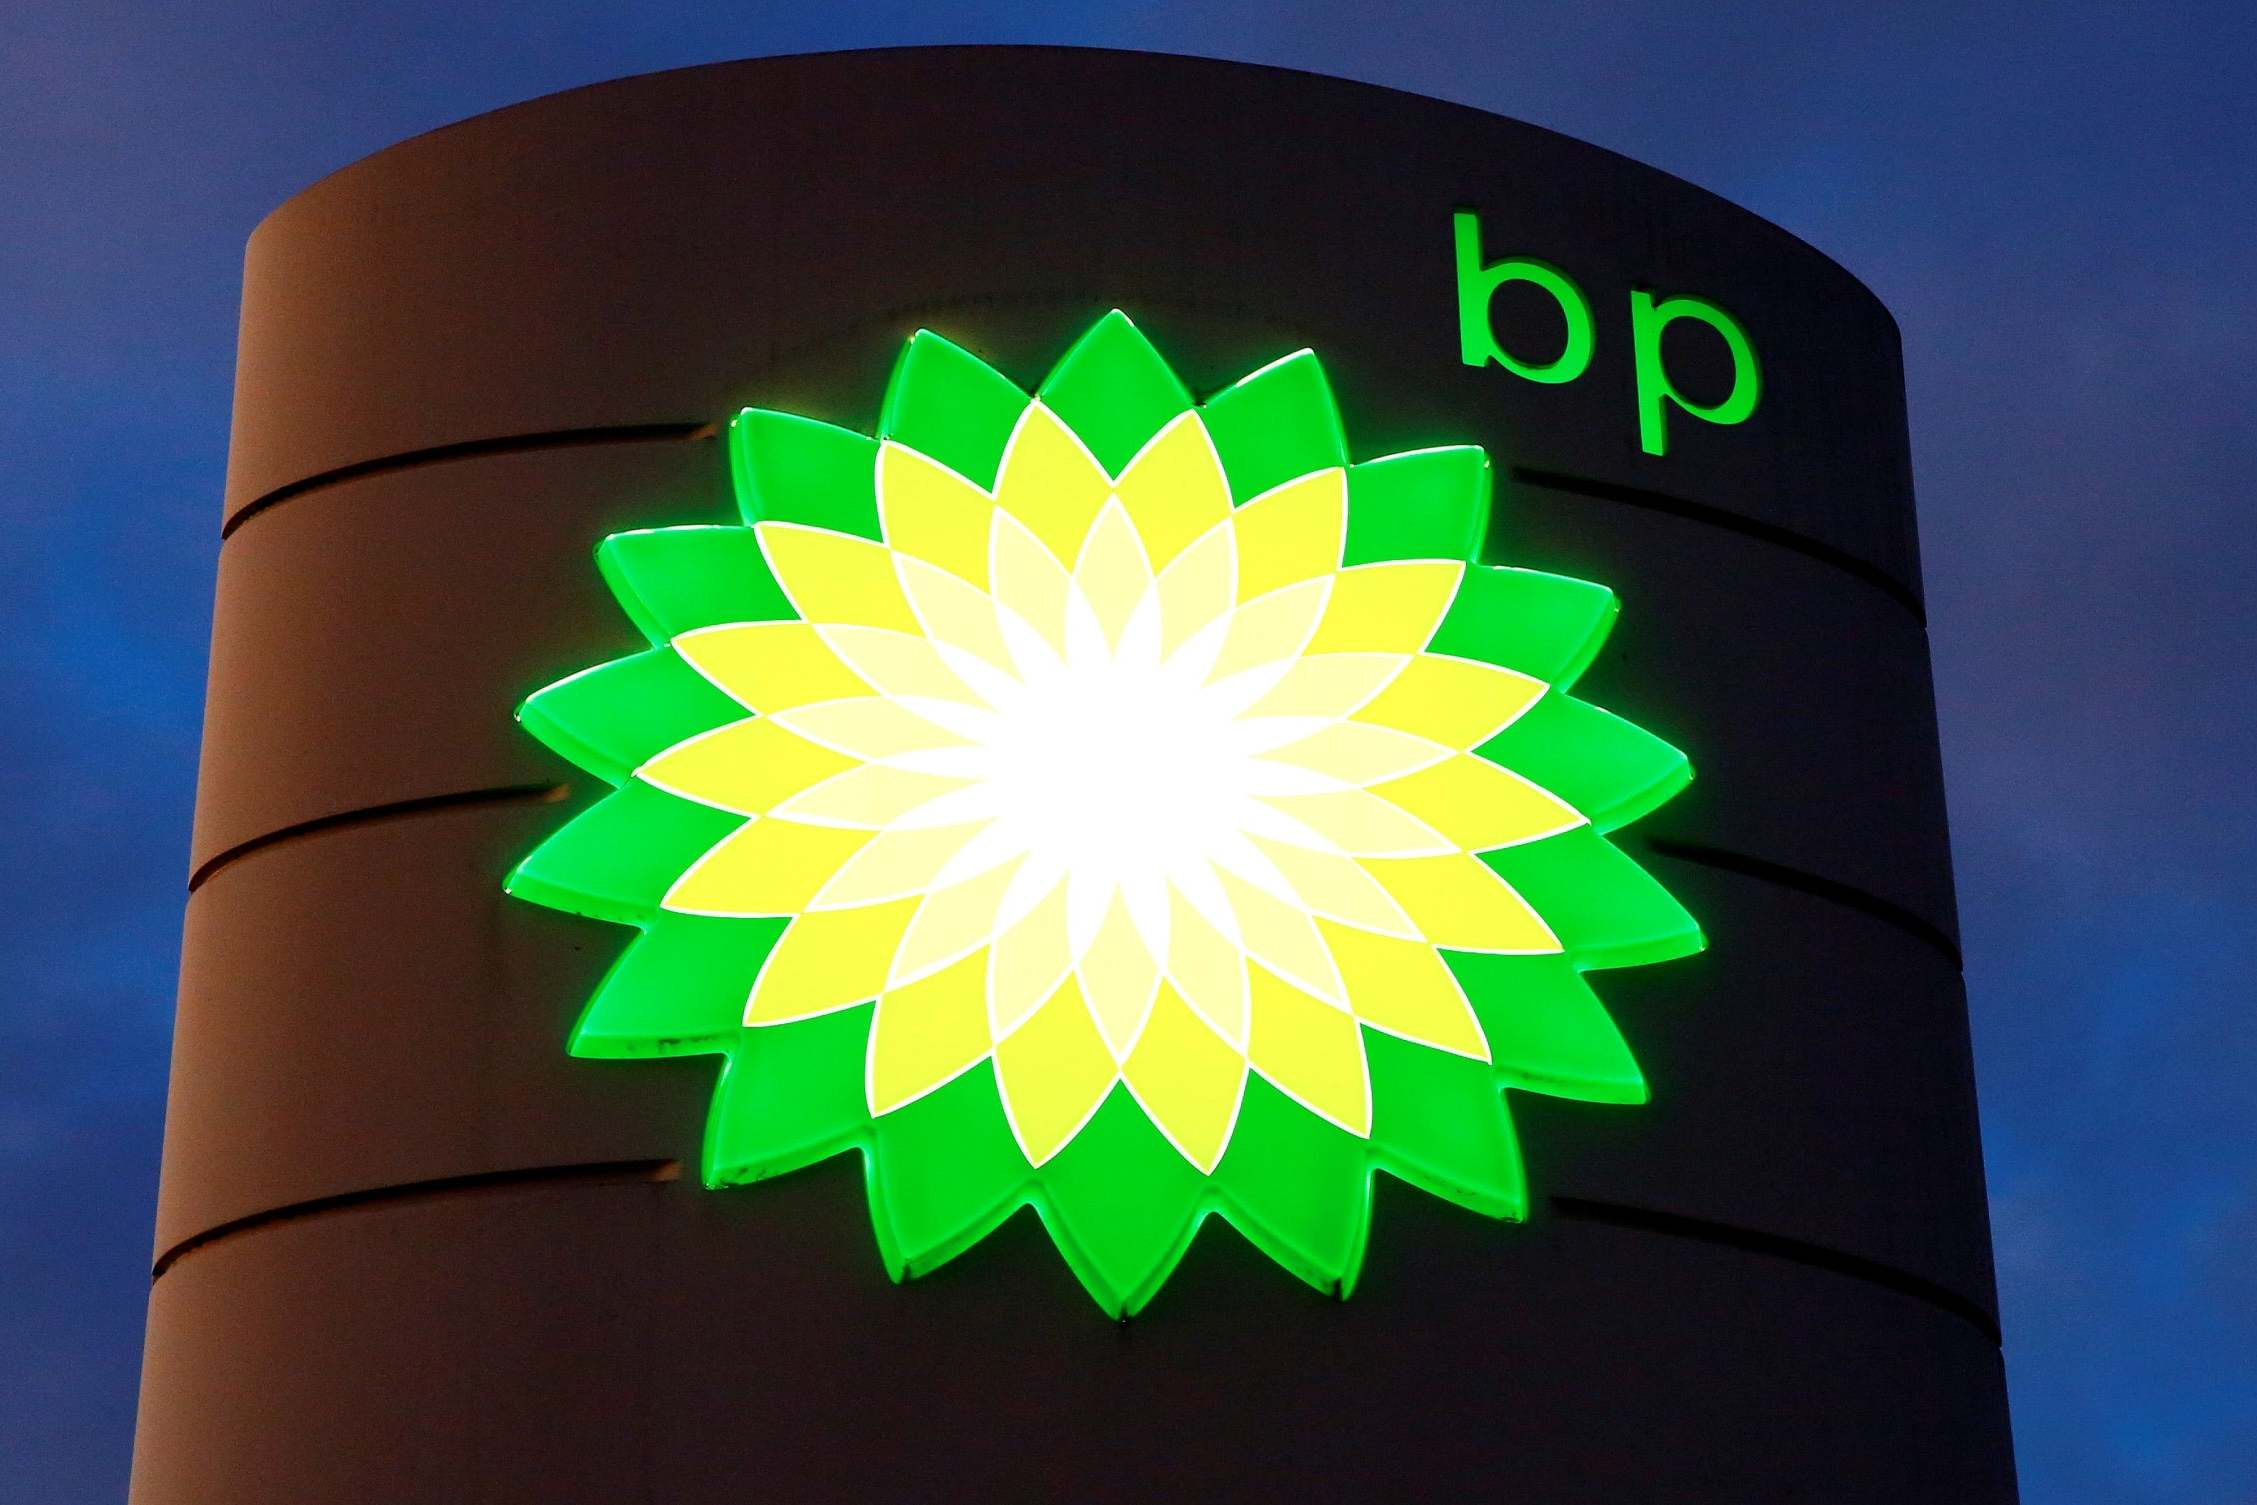 Trump watered down environmental laws after BP lobbying, letters reveal - RapidAPI